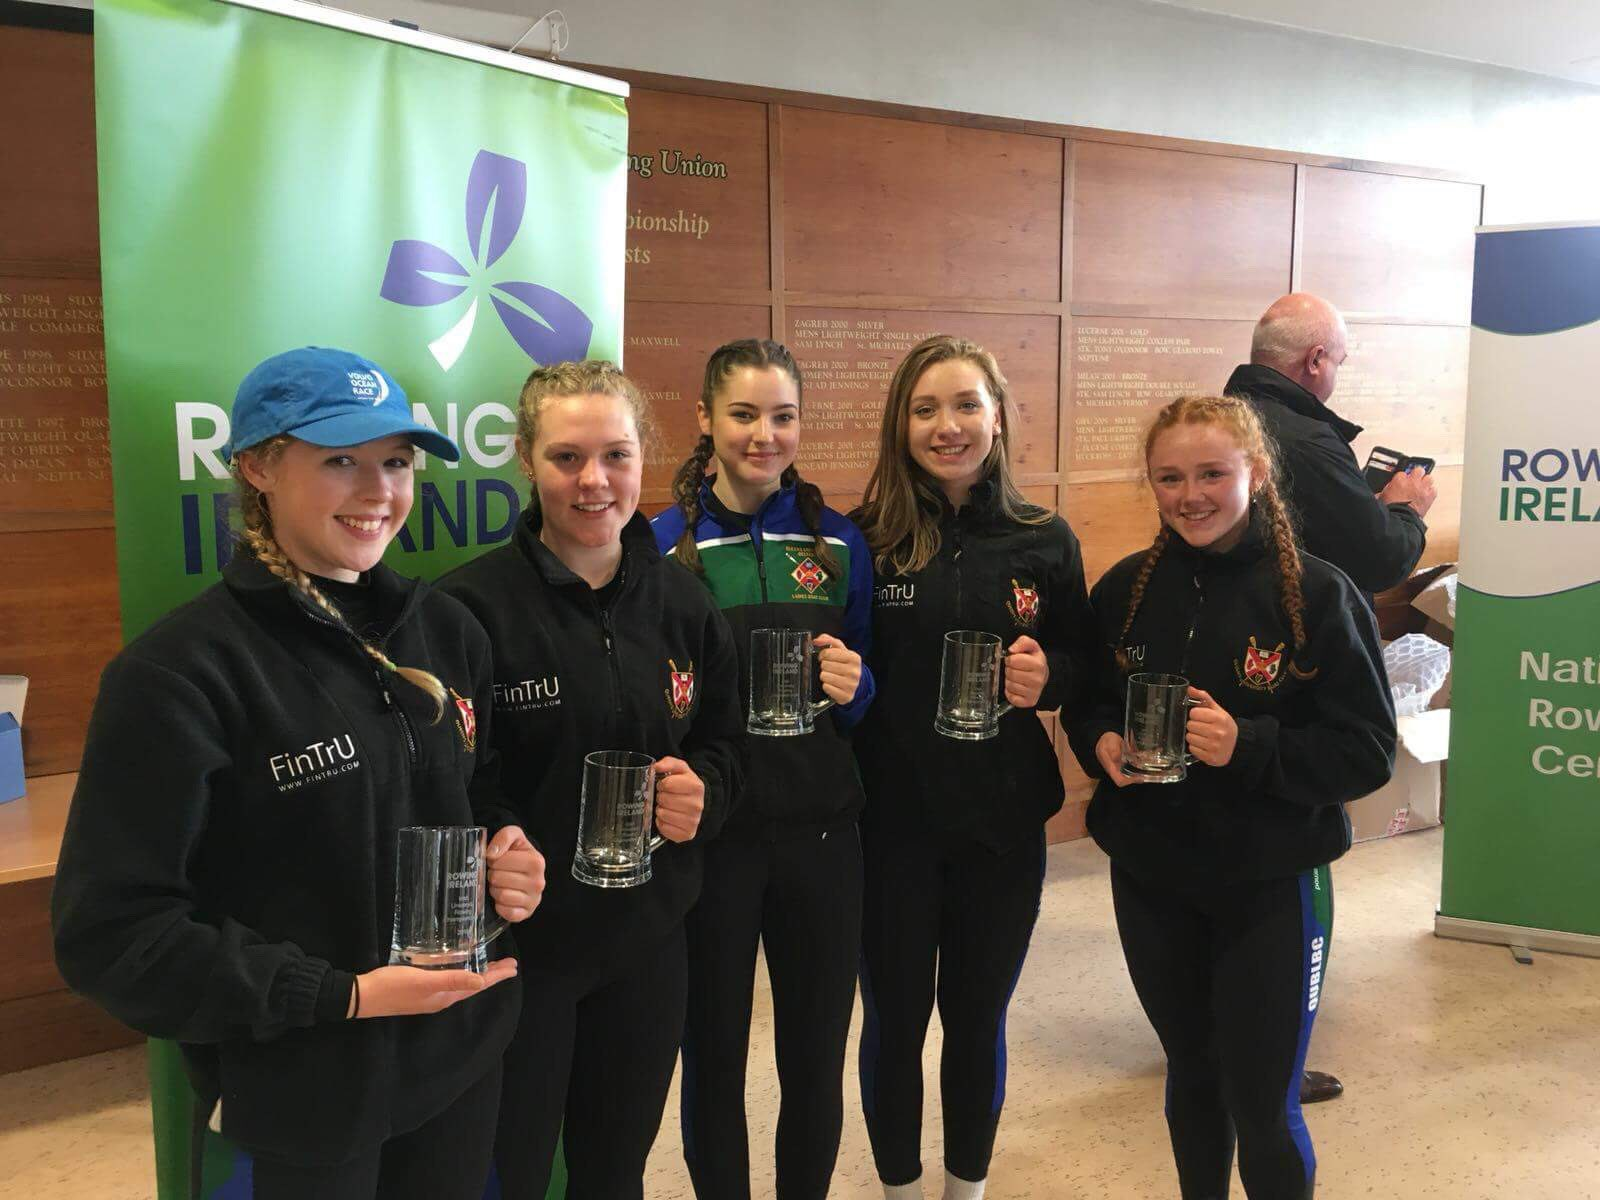 Ellie McConnell, Laura Murphy, Caitriona Carson (Cox), Eimhear Rose Cunningham and Victoria White were victorious in the Womens Novice 4X+